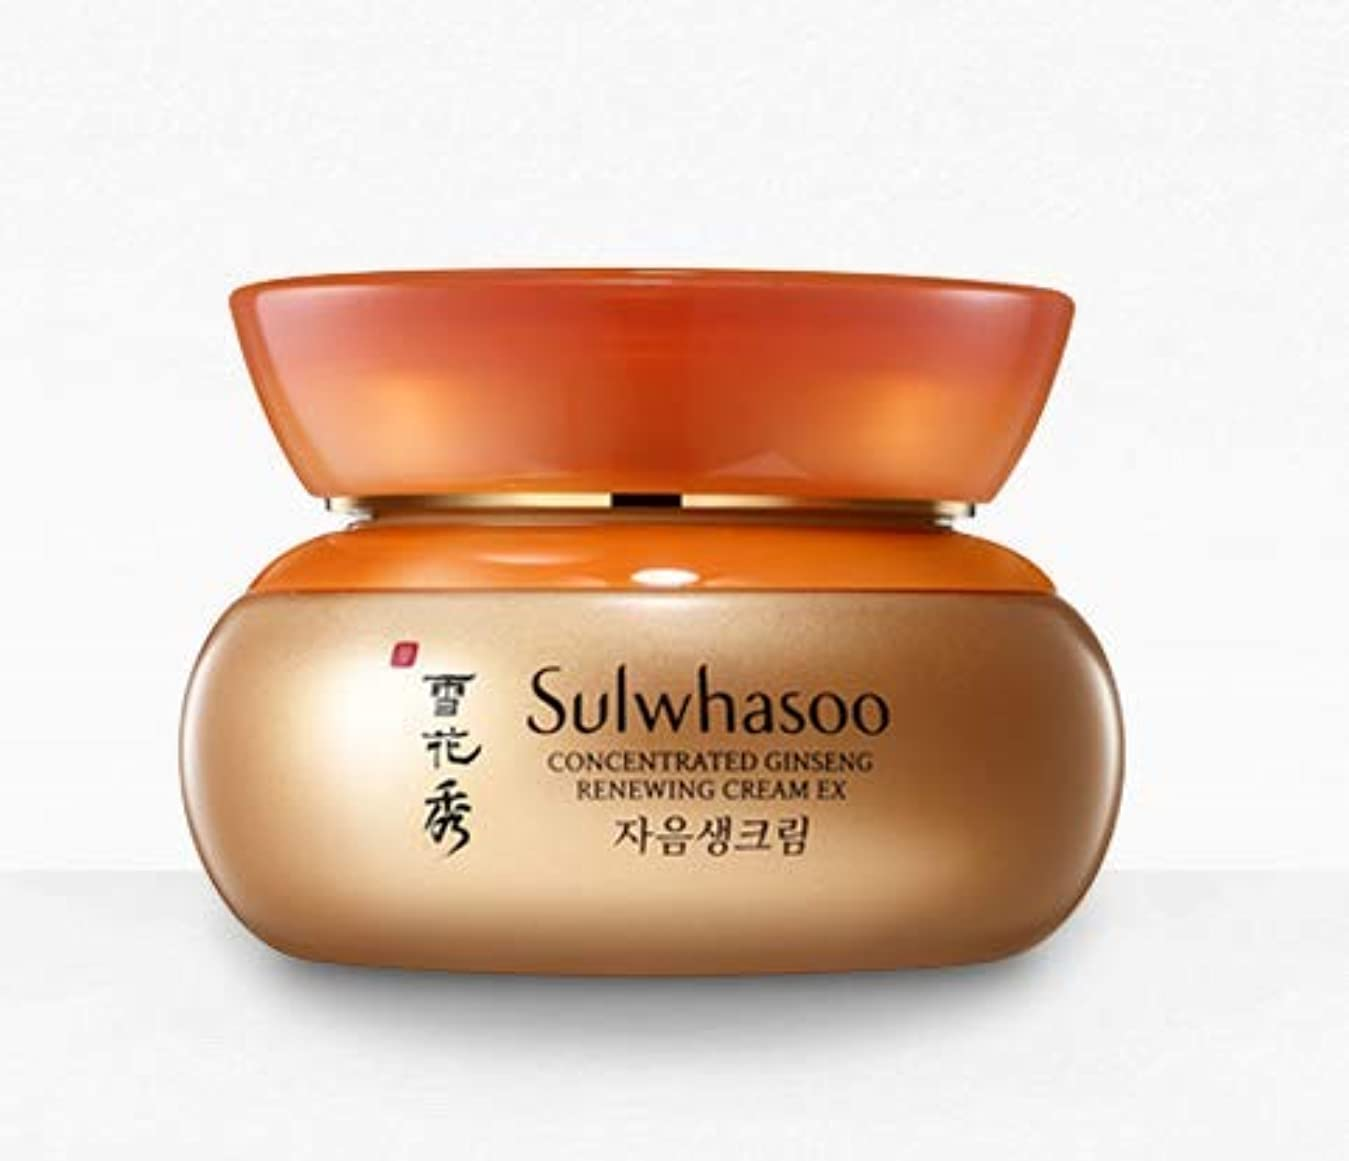 シリアル何か中絶[(雪花秀) Sulwhasoo] [ Concentrated GINSENG RENEWING CREAM EX 60ml Anti-aging cream]並行輸入品 [並行輸入品]